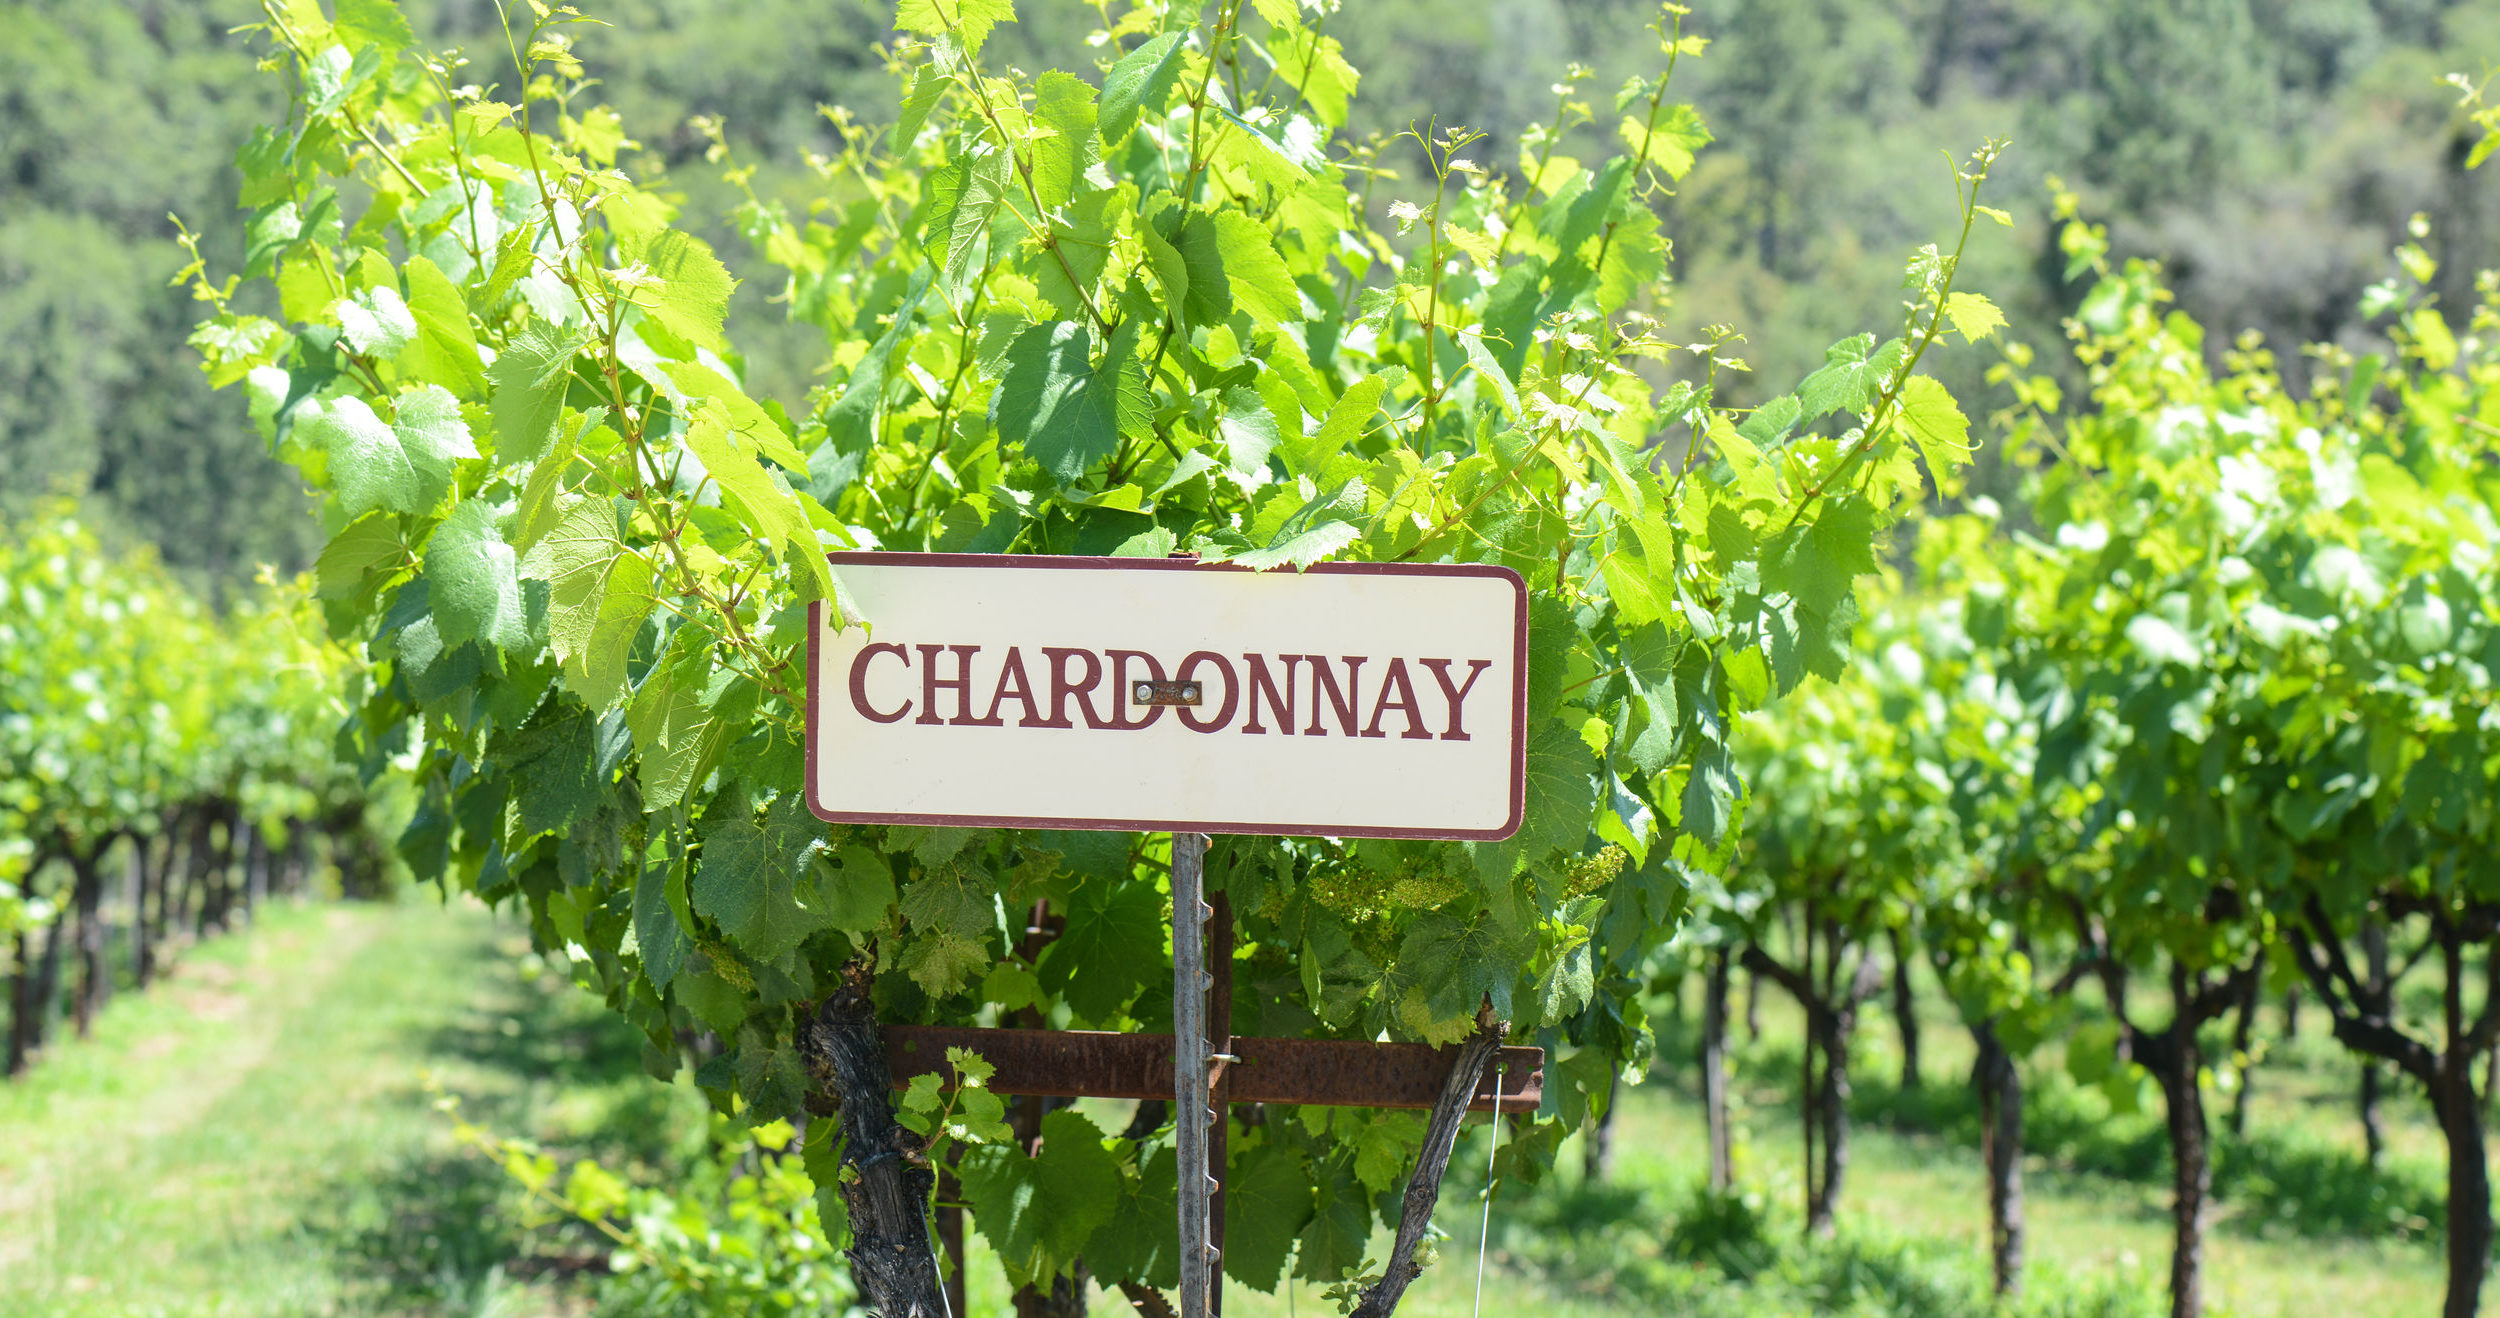 5 Laudable Chardonnay's, and Why We Love Them